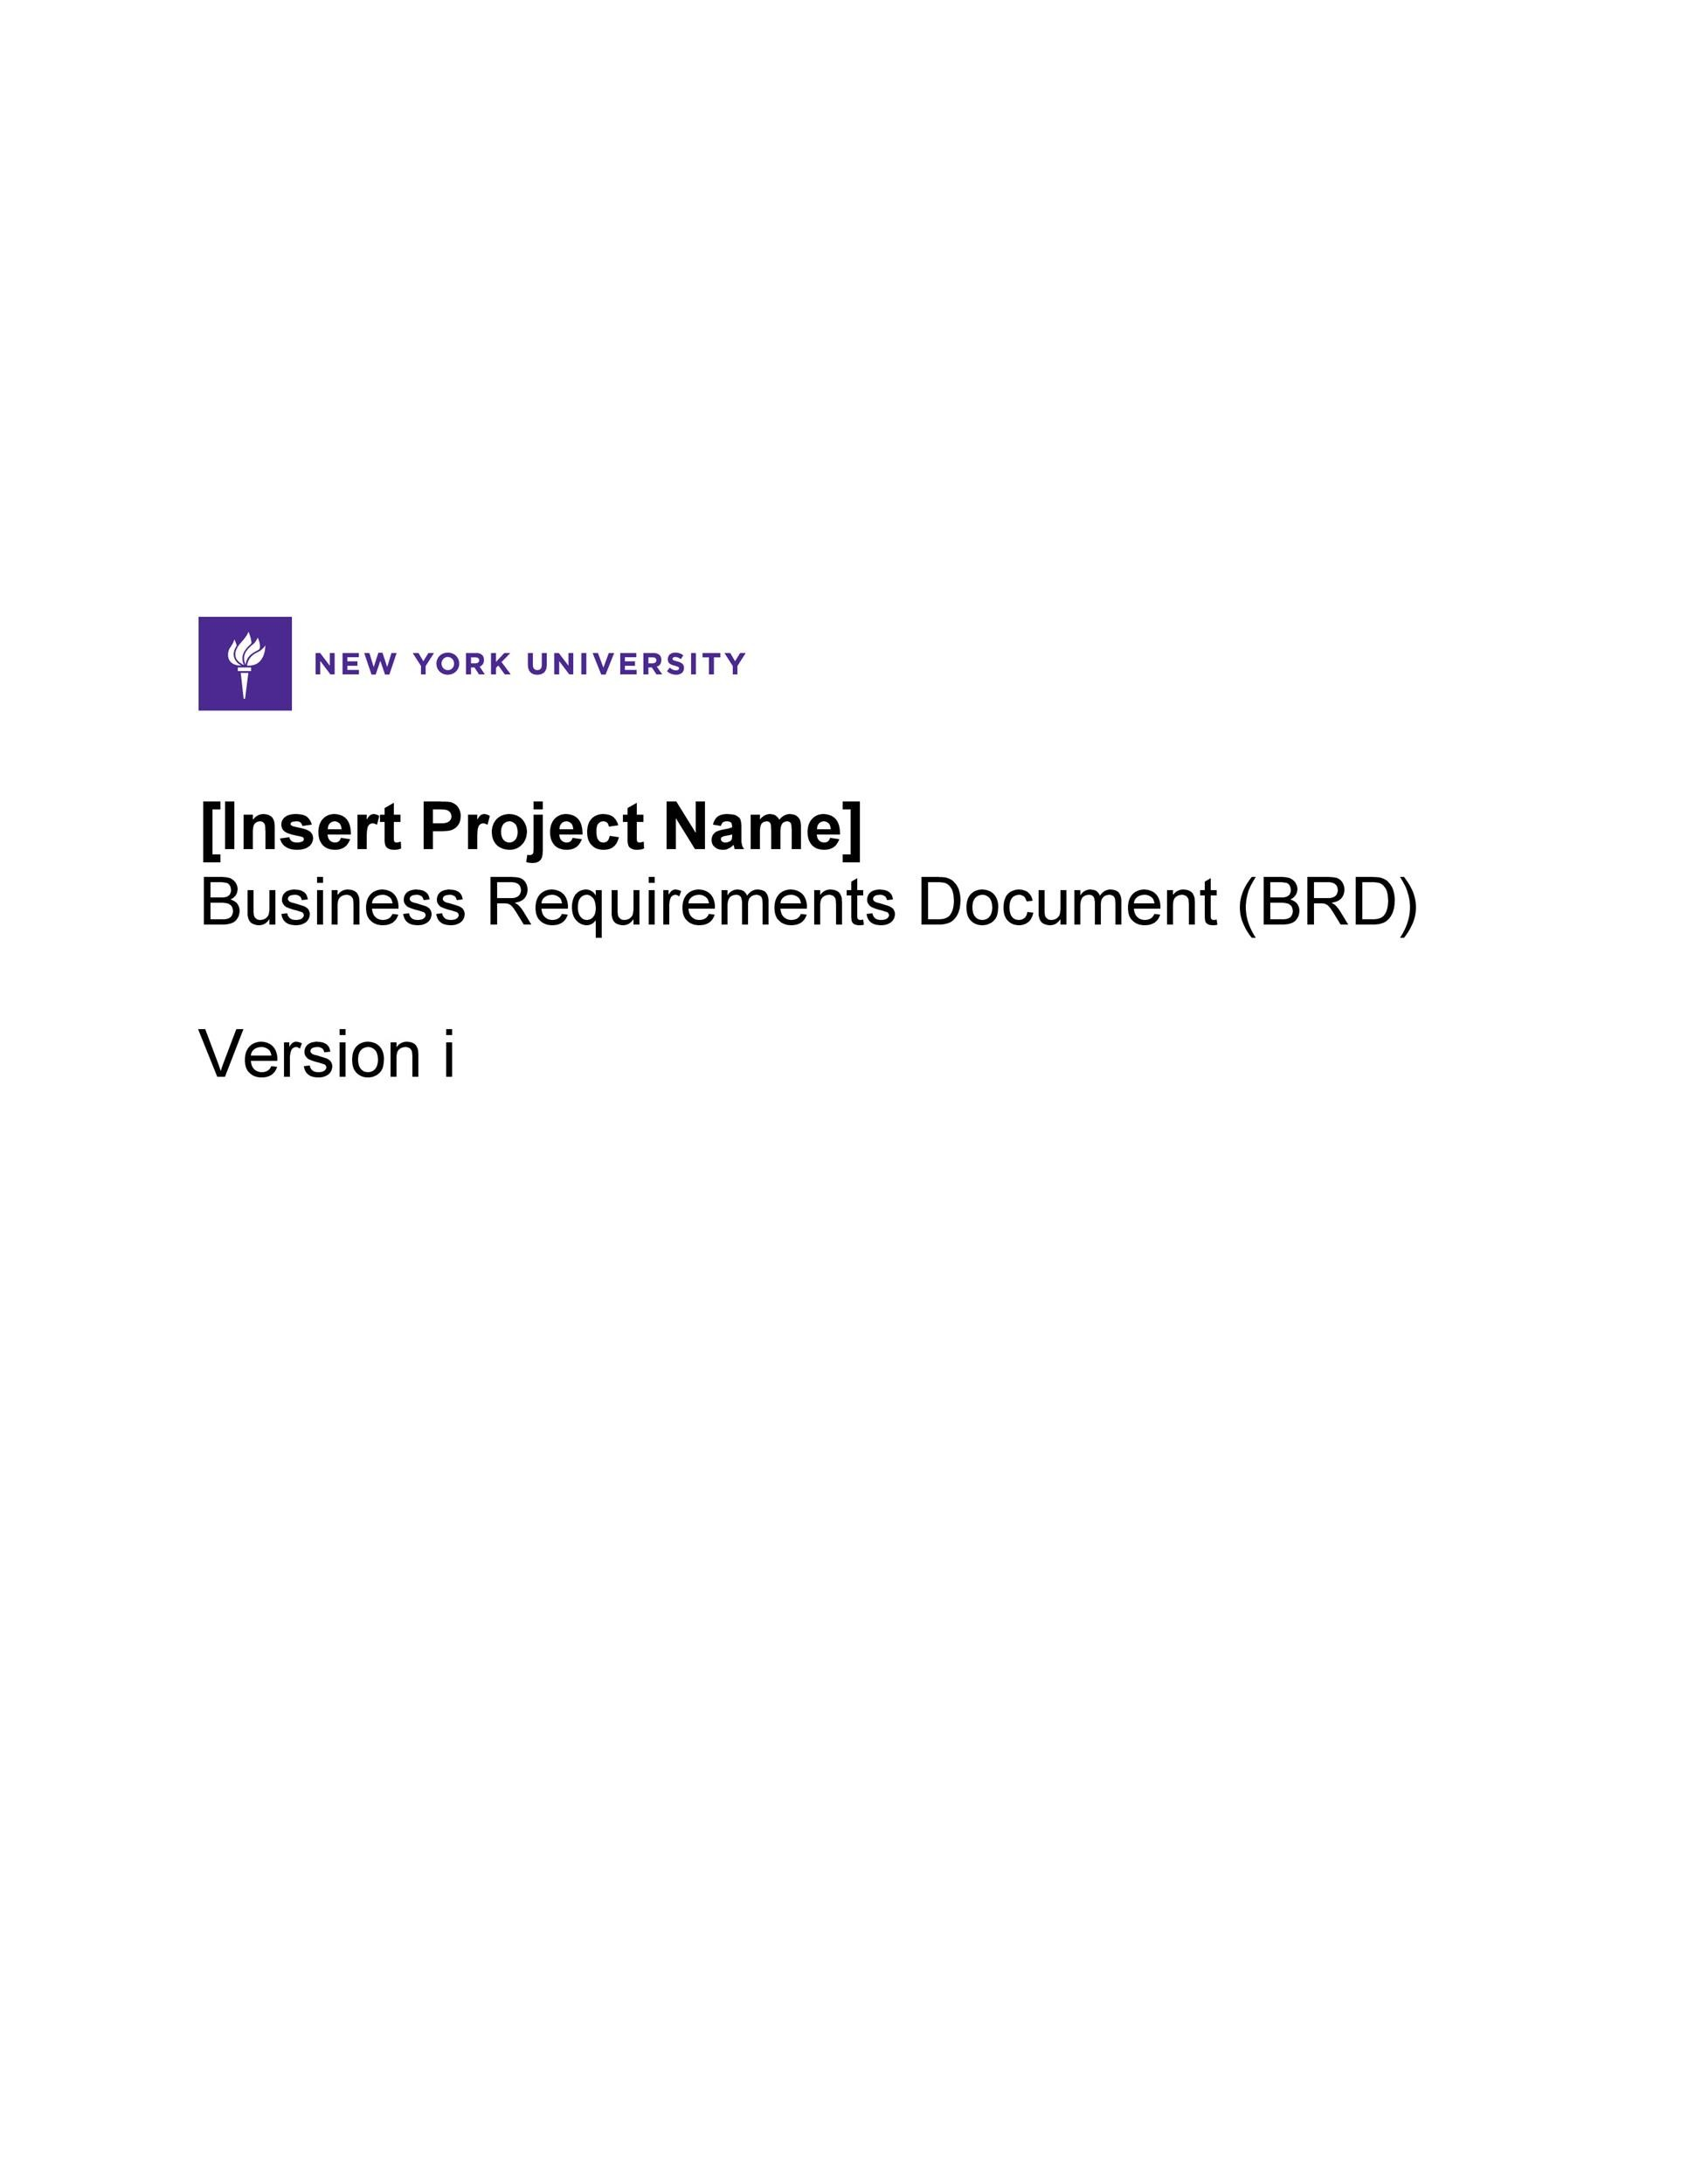 Free business requirements document template 01